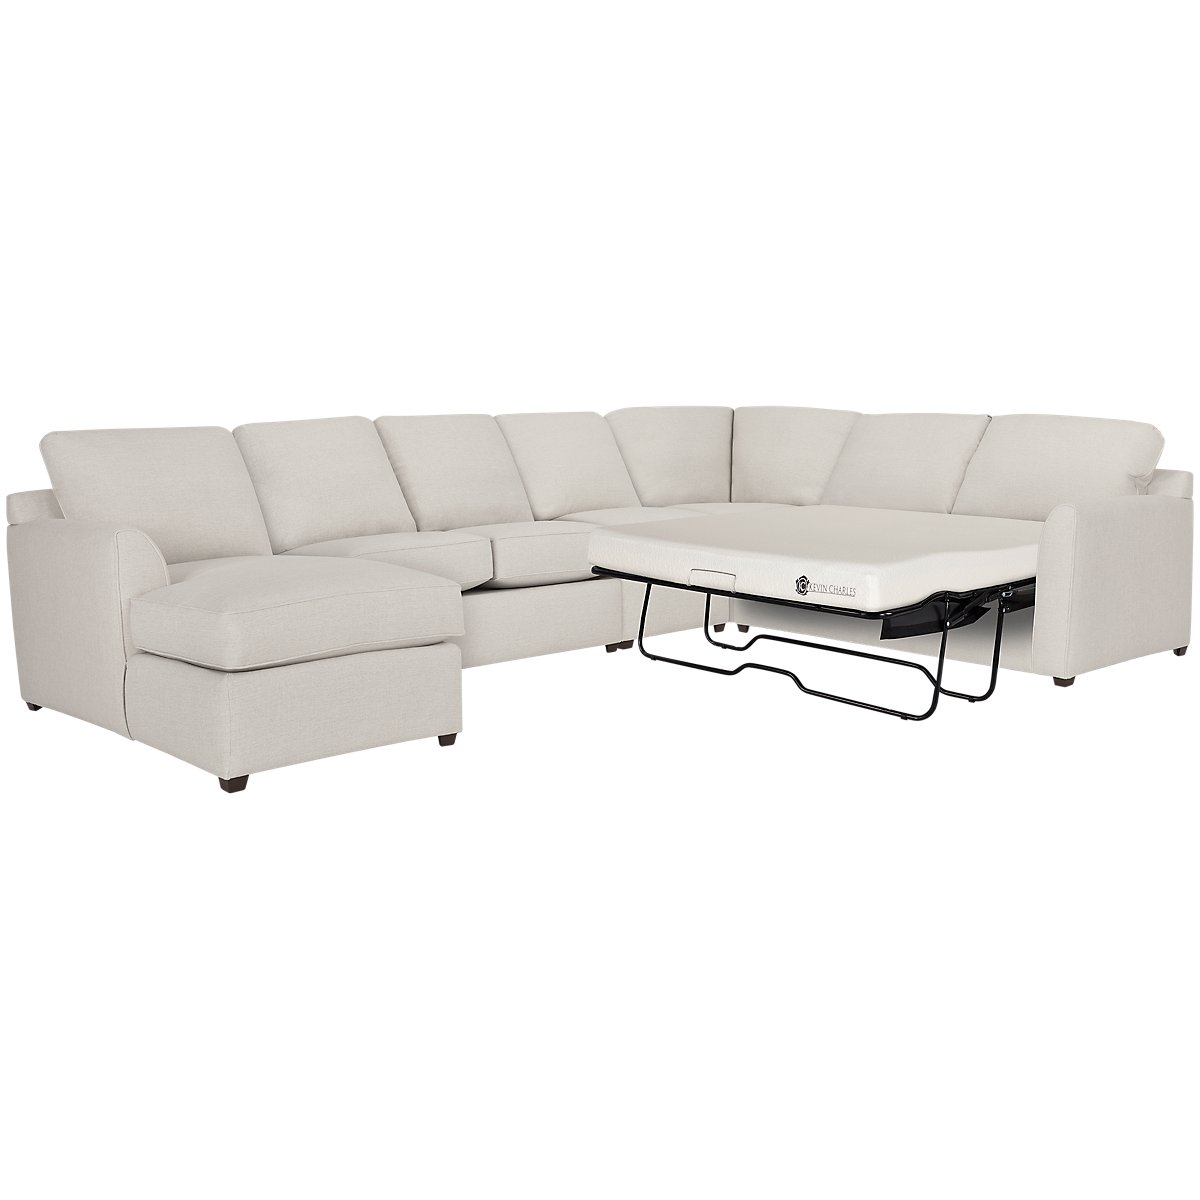 Asheville Light Taupe Fabric Left Chaise Memory Foam Sleeper Sectional